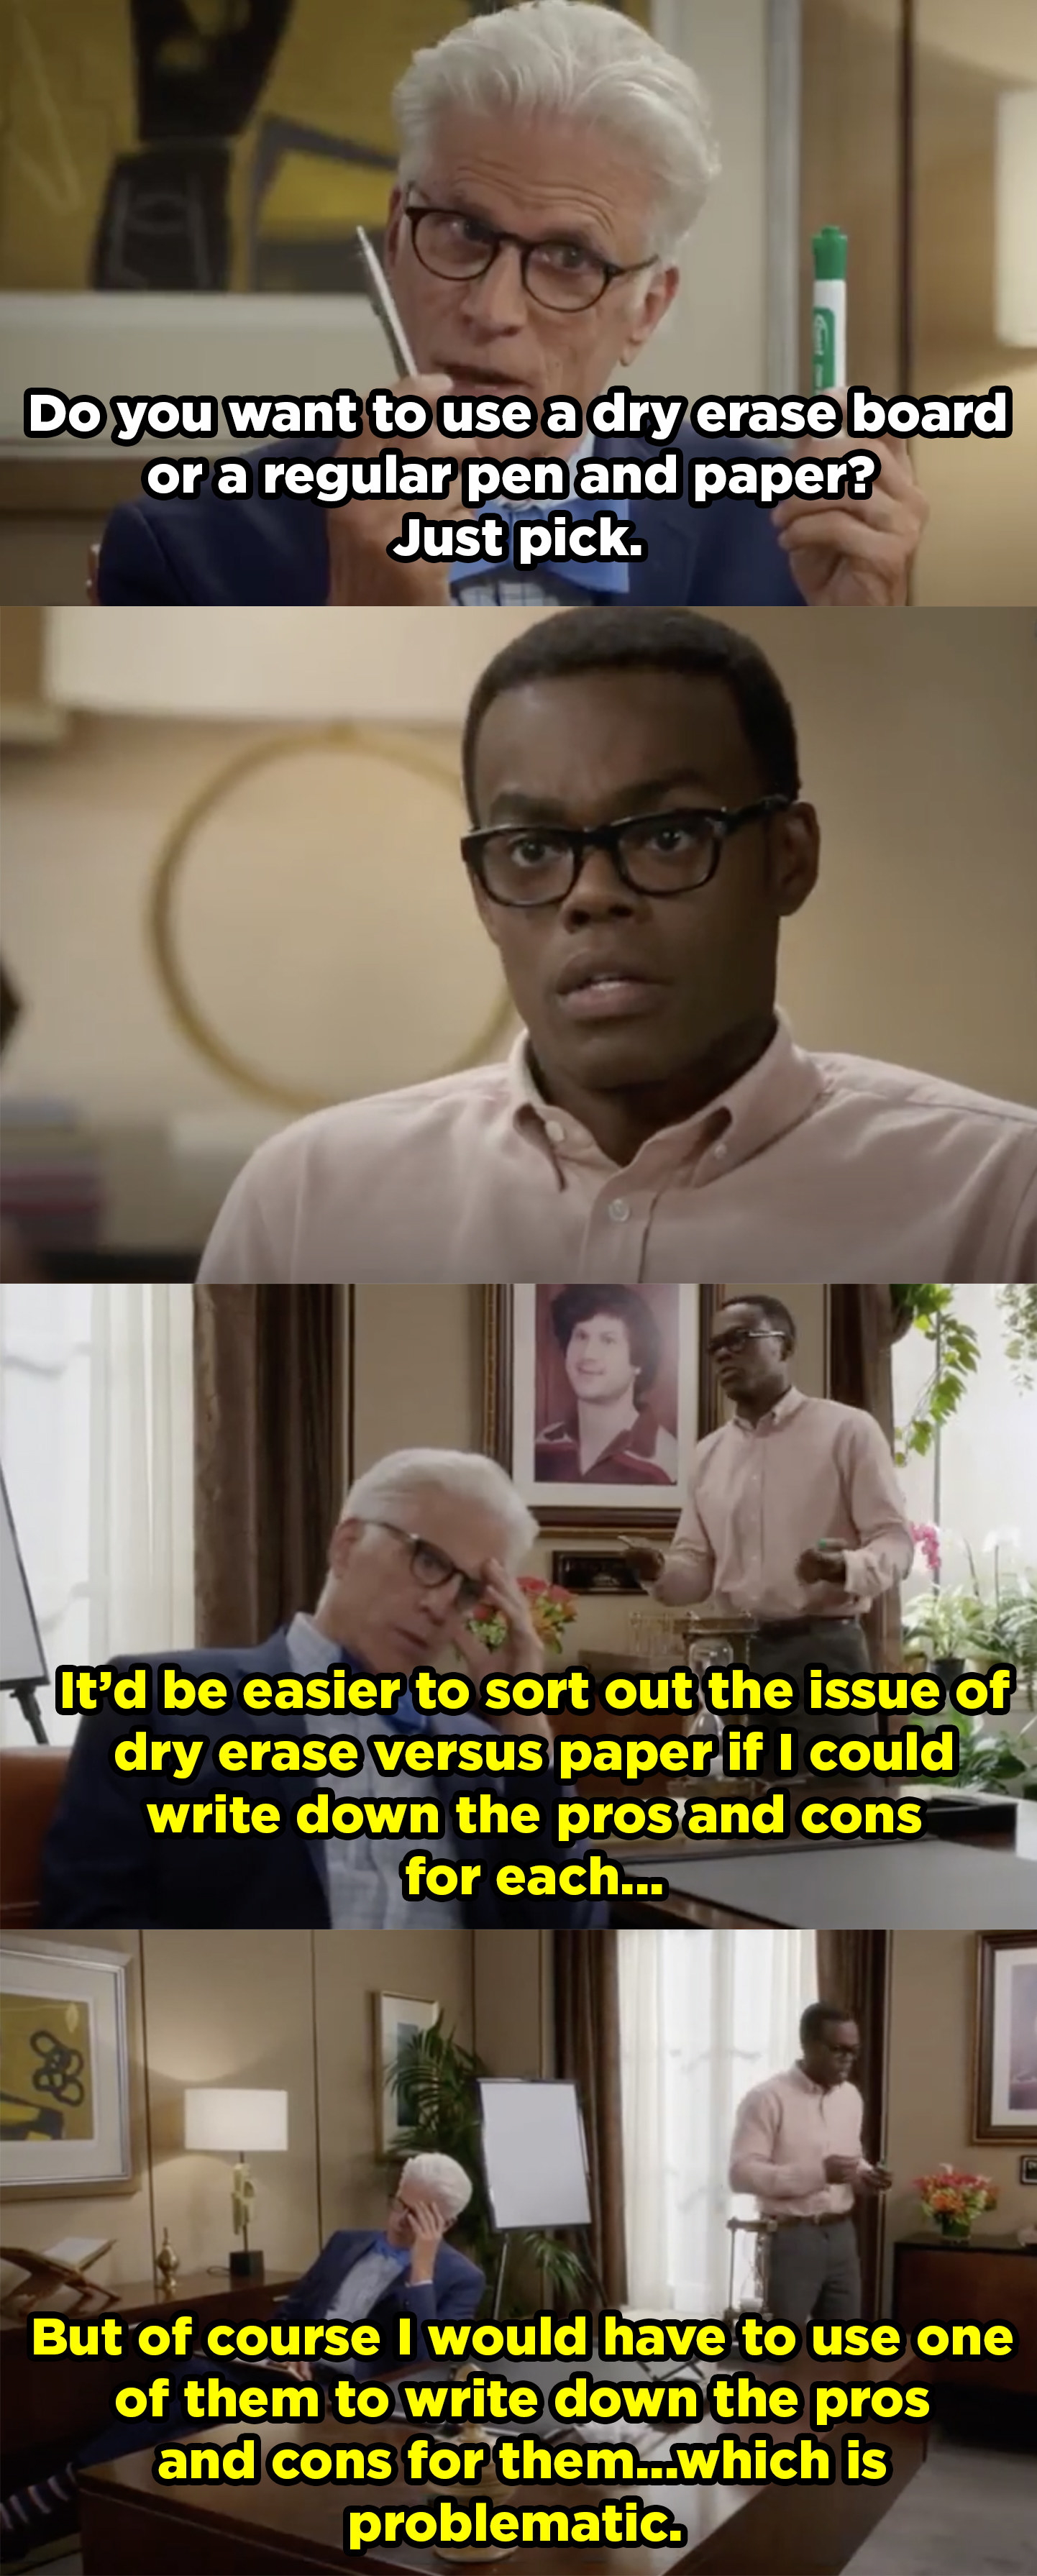 Michael asks Chidi whether he wants to use dry erase board or pen and paper and Chidi gets into a long discussion re: the pros and cons